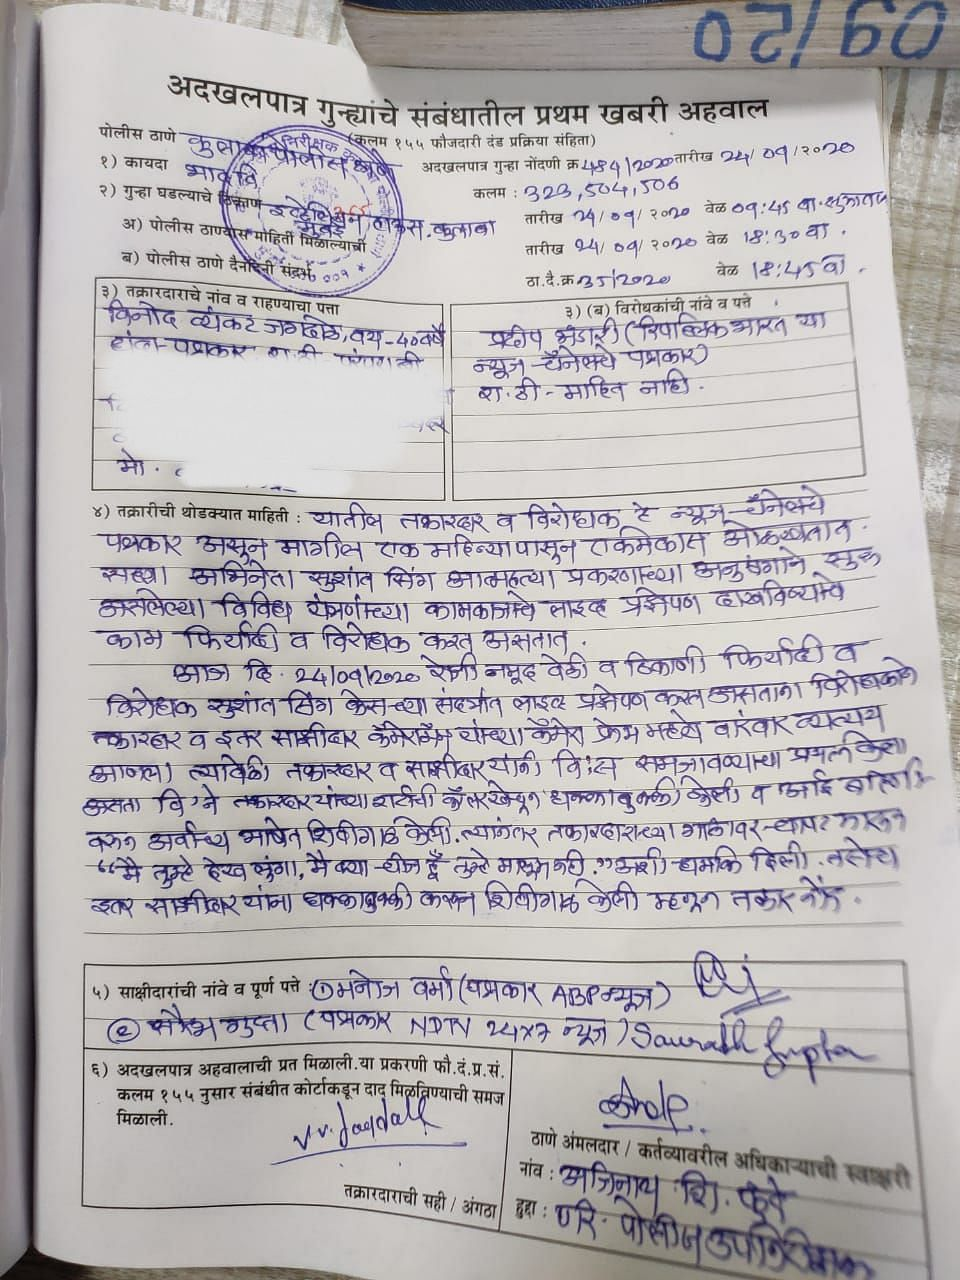 The complaint filed at Colaba police station.